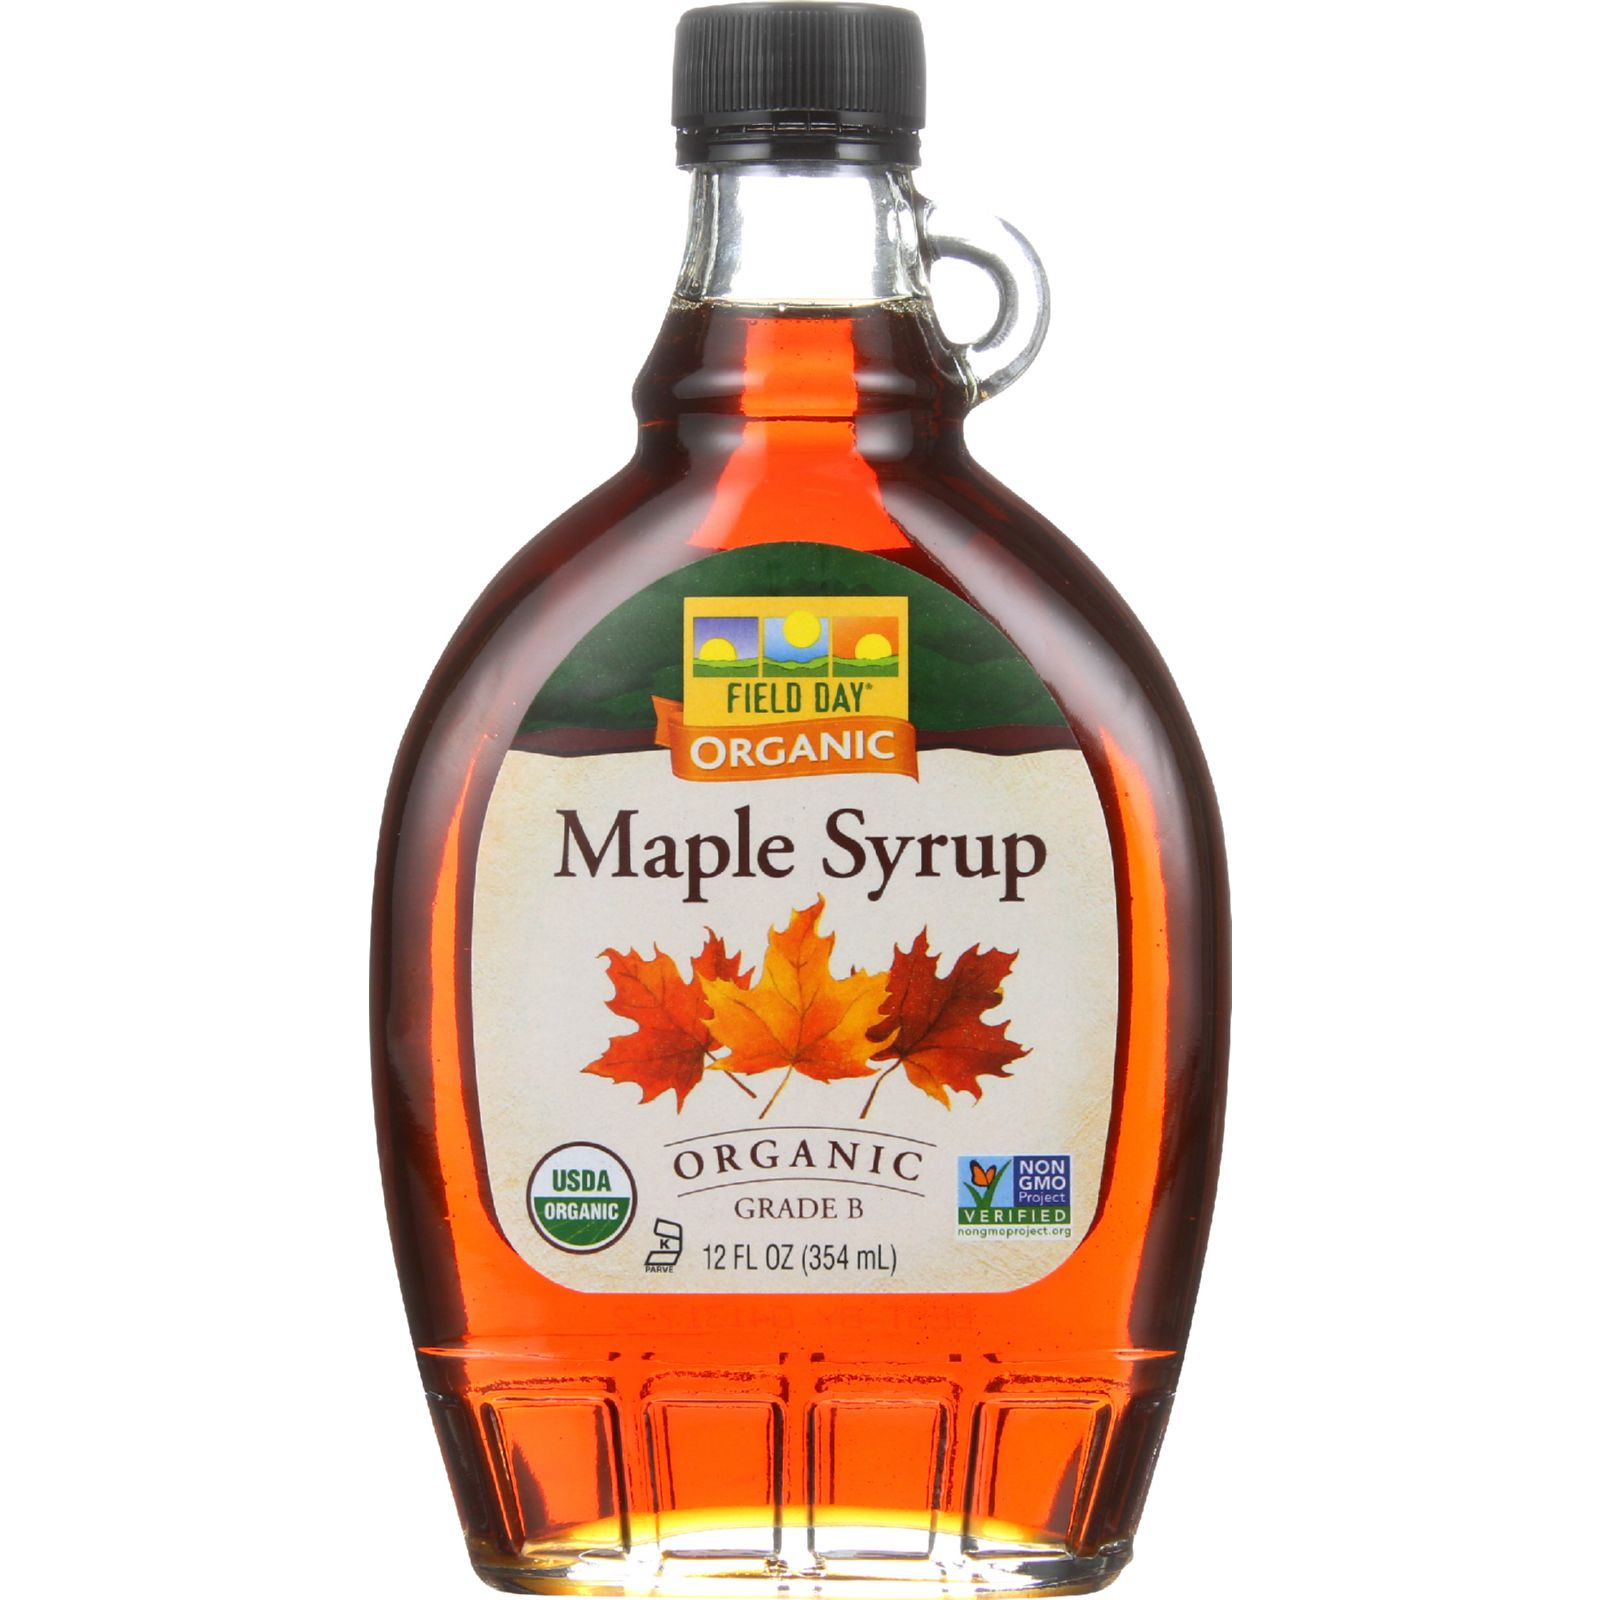 Field Day Maple Syrup